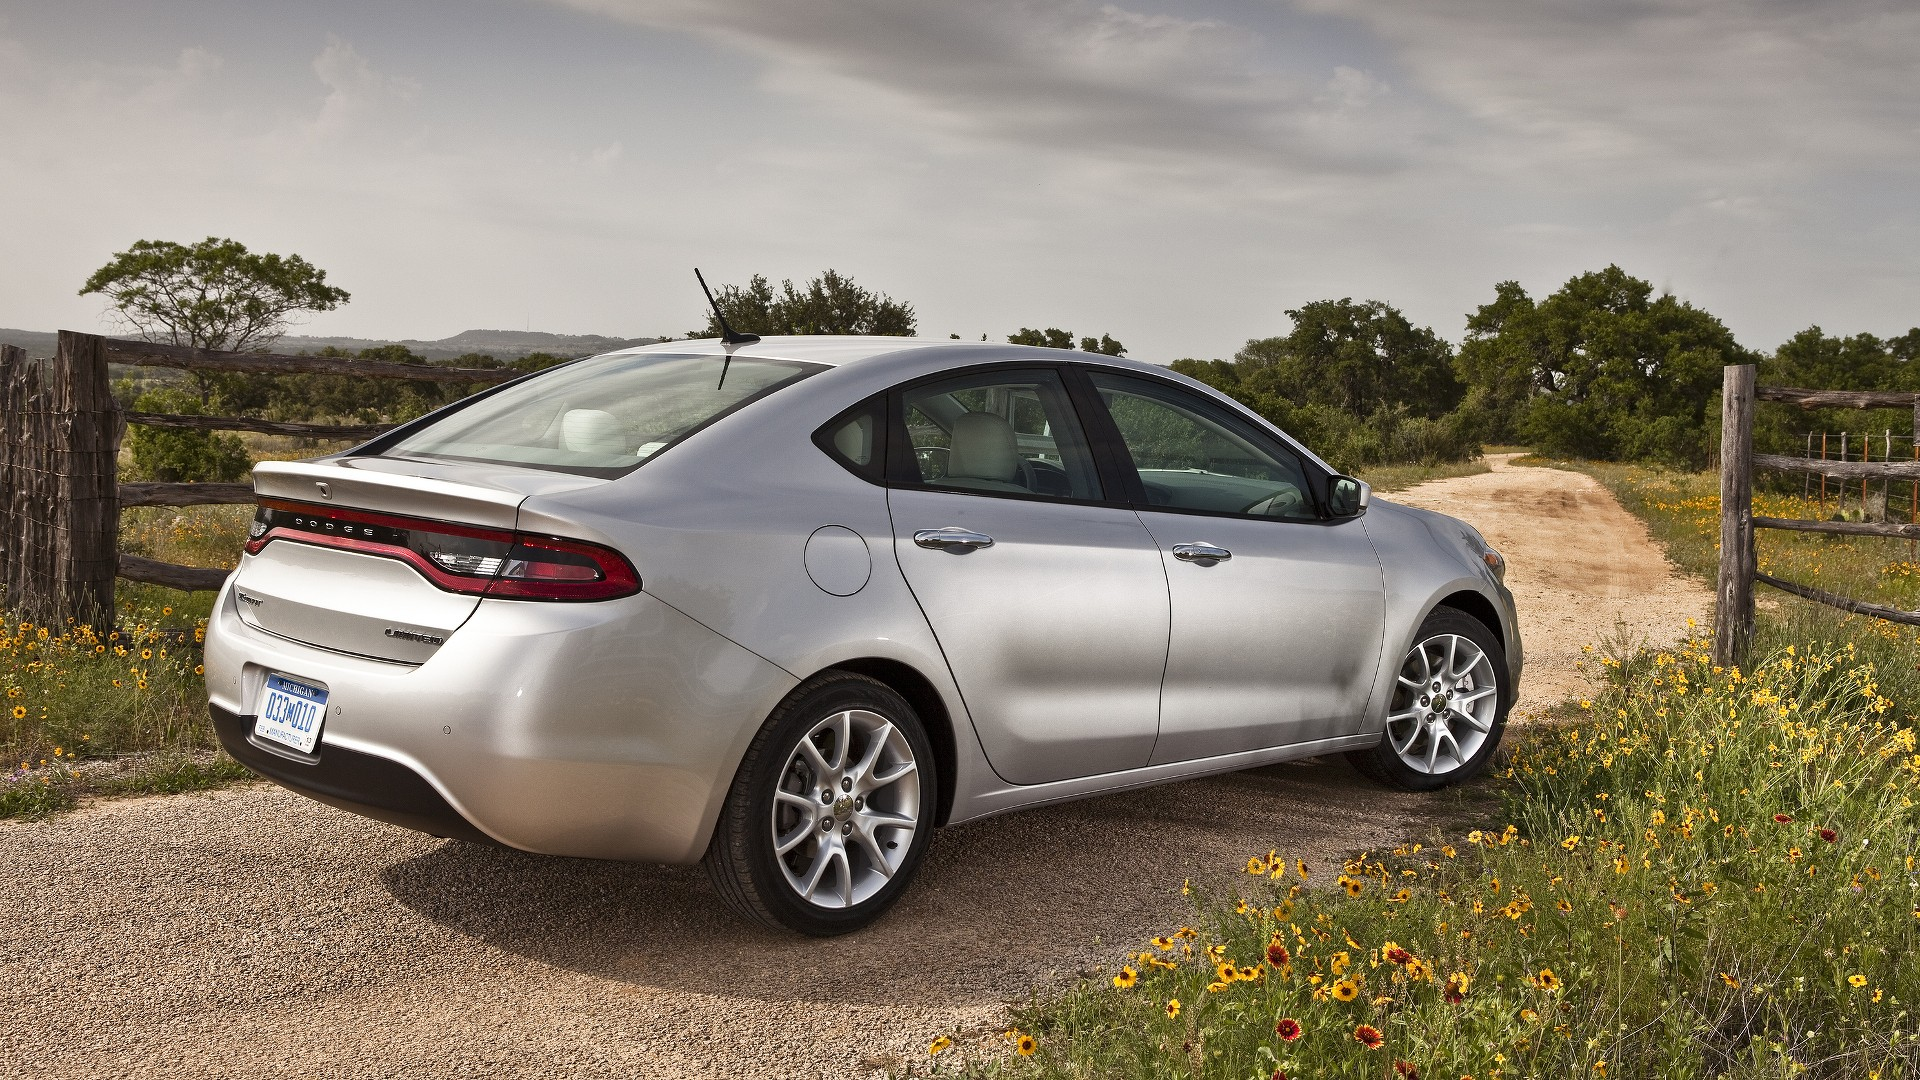 2016 Dodge Dart Introduced It s $1 400 Cheaper than the 2015 Model